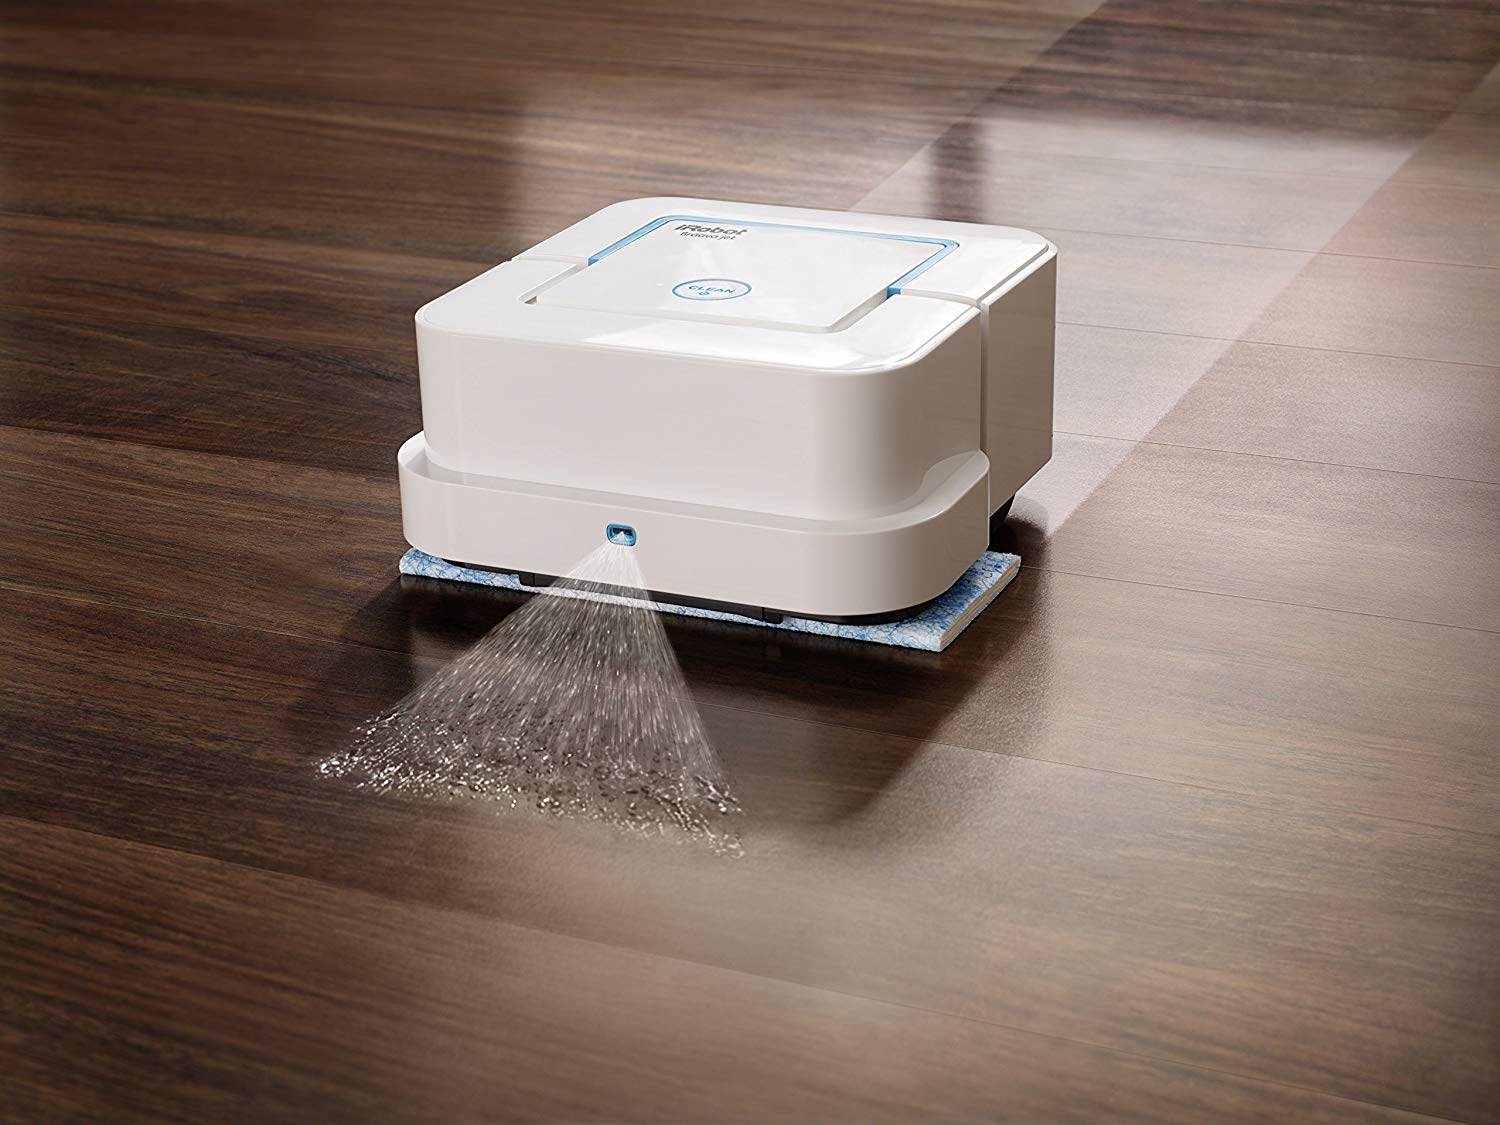 iRobot-Braava-jet-240-Superior-Robot-Mop--App-enabled-Precision-Jet-Spray-vibrating-cleaning-head-wet-and-damp-mopping-dry-sweeping-modes